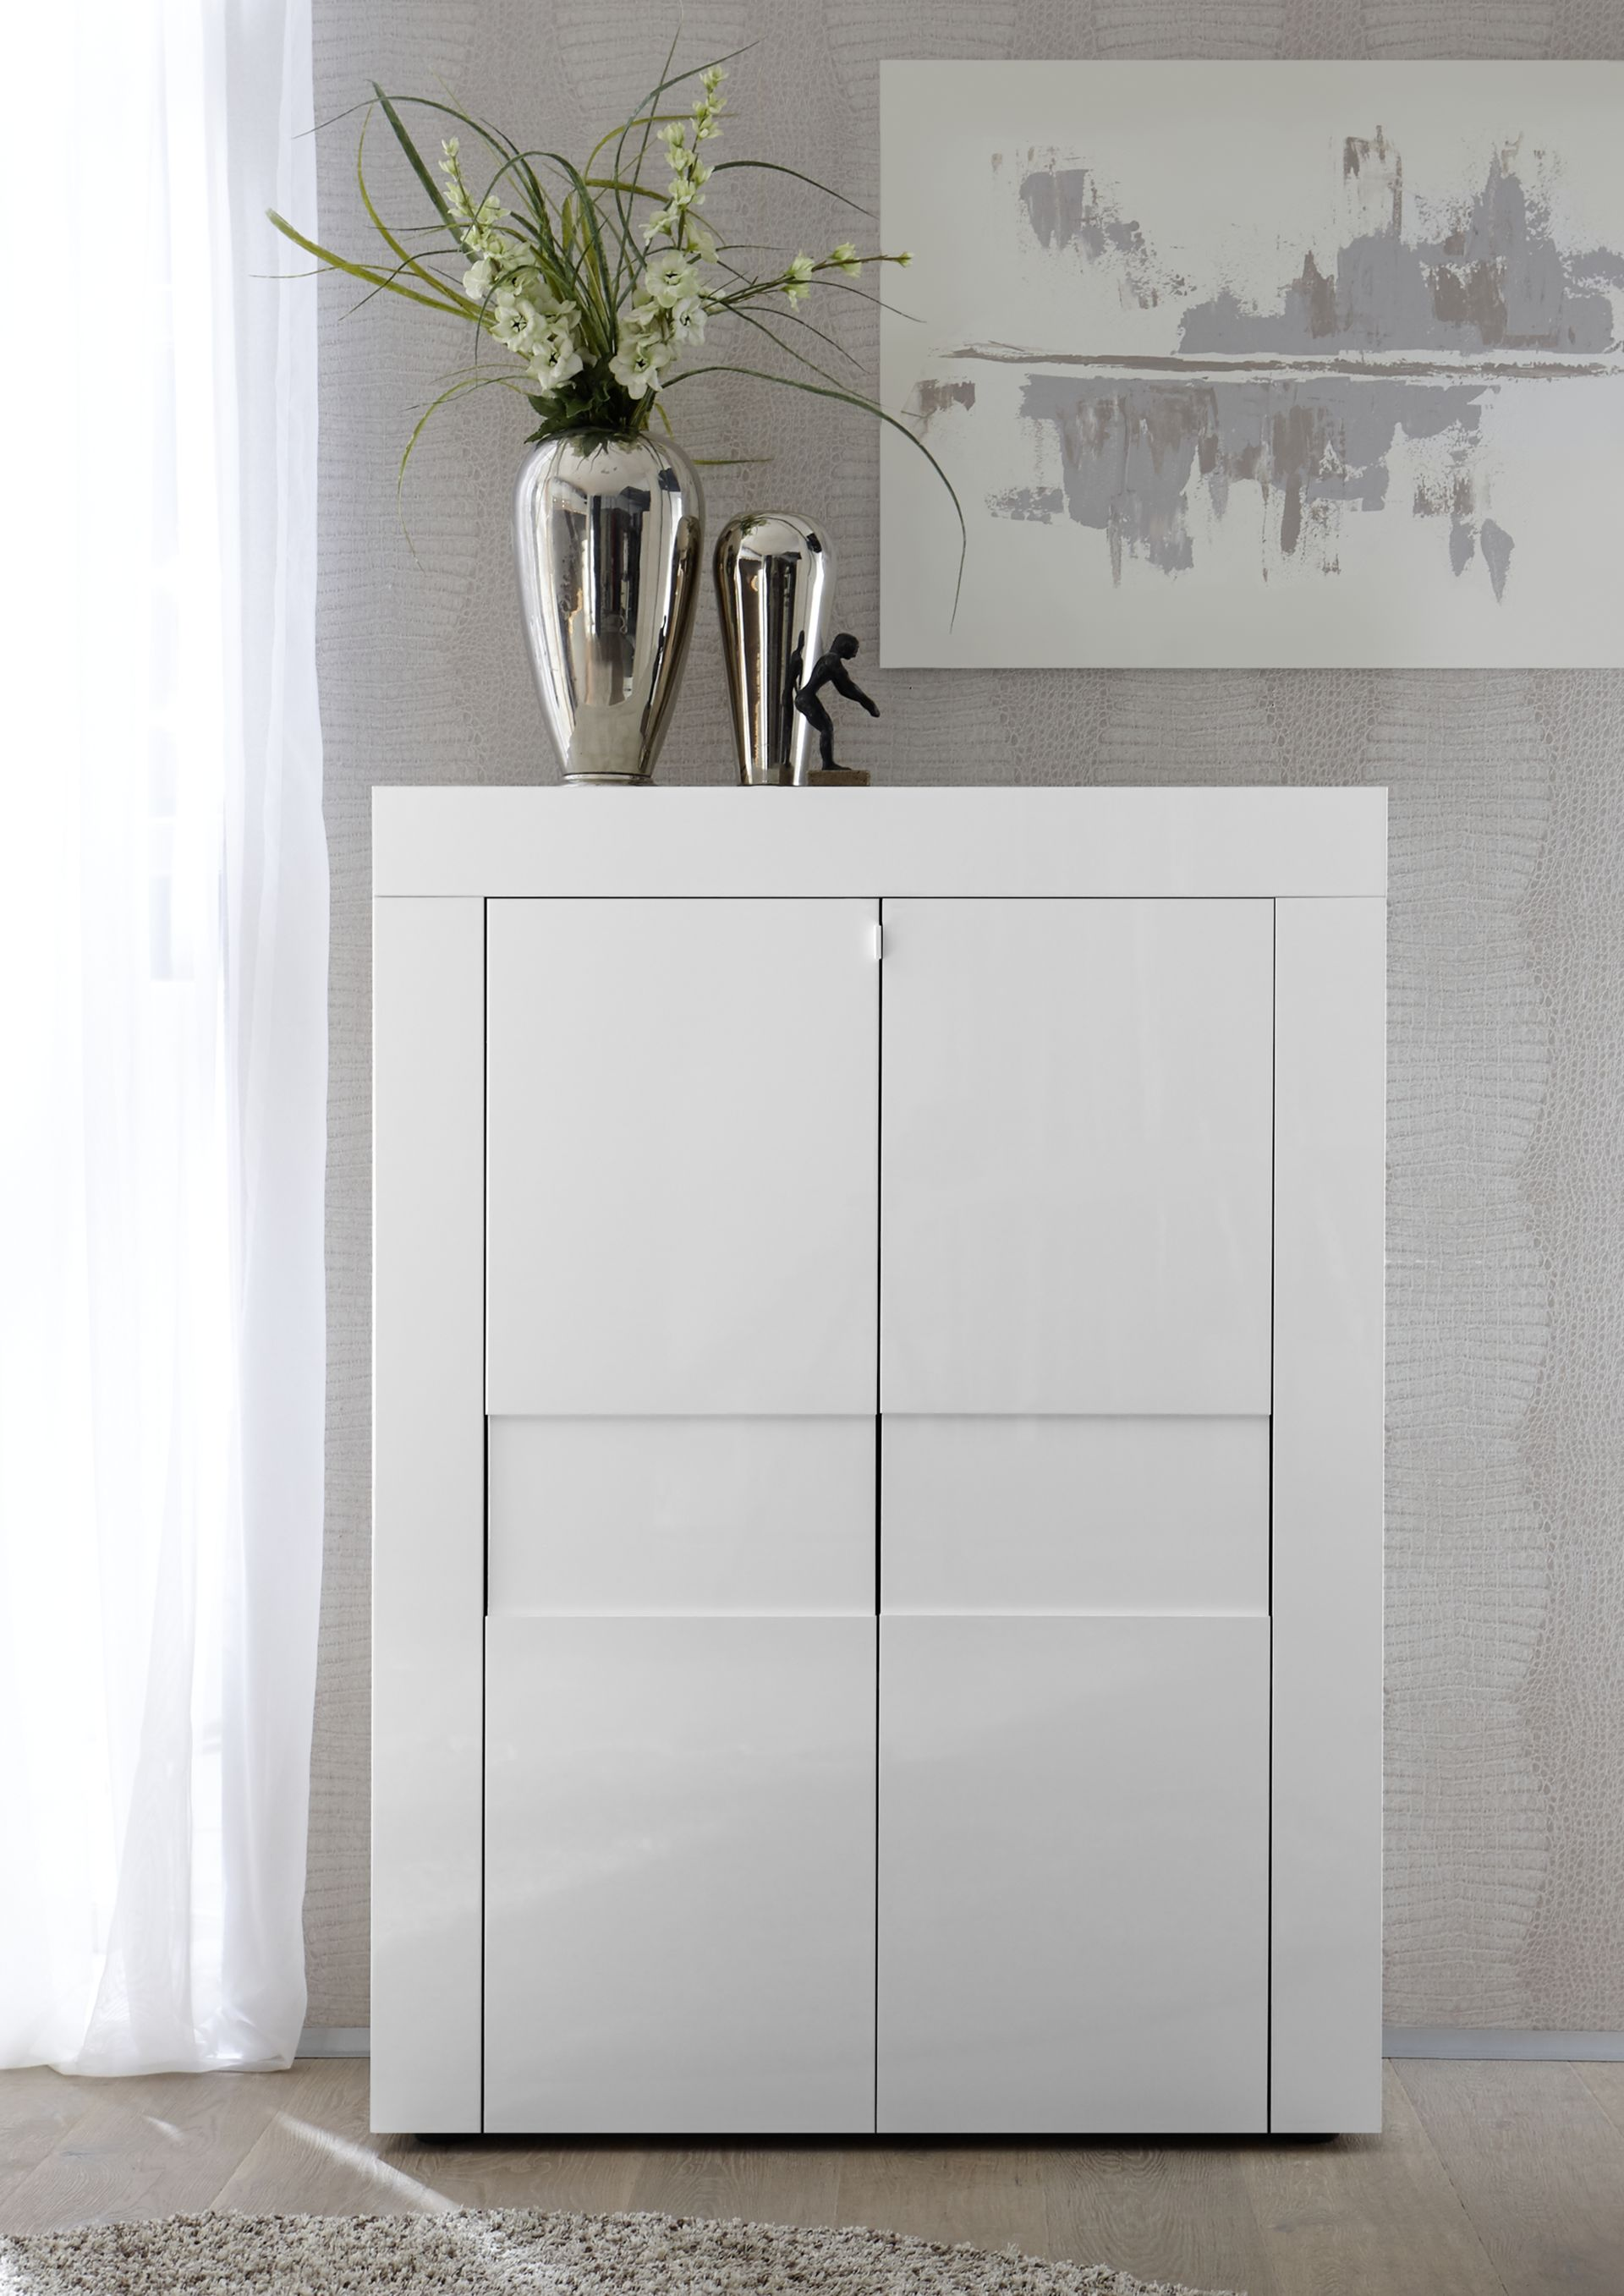 https://www.aktiewonen.nl/images/productimages/big/1067_highboard-kast-wit.jpg